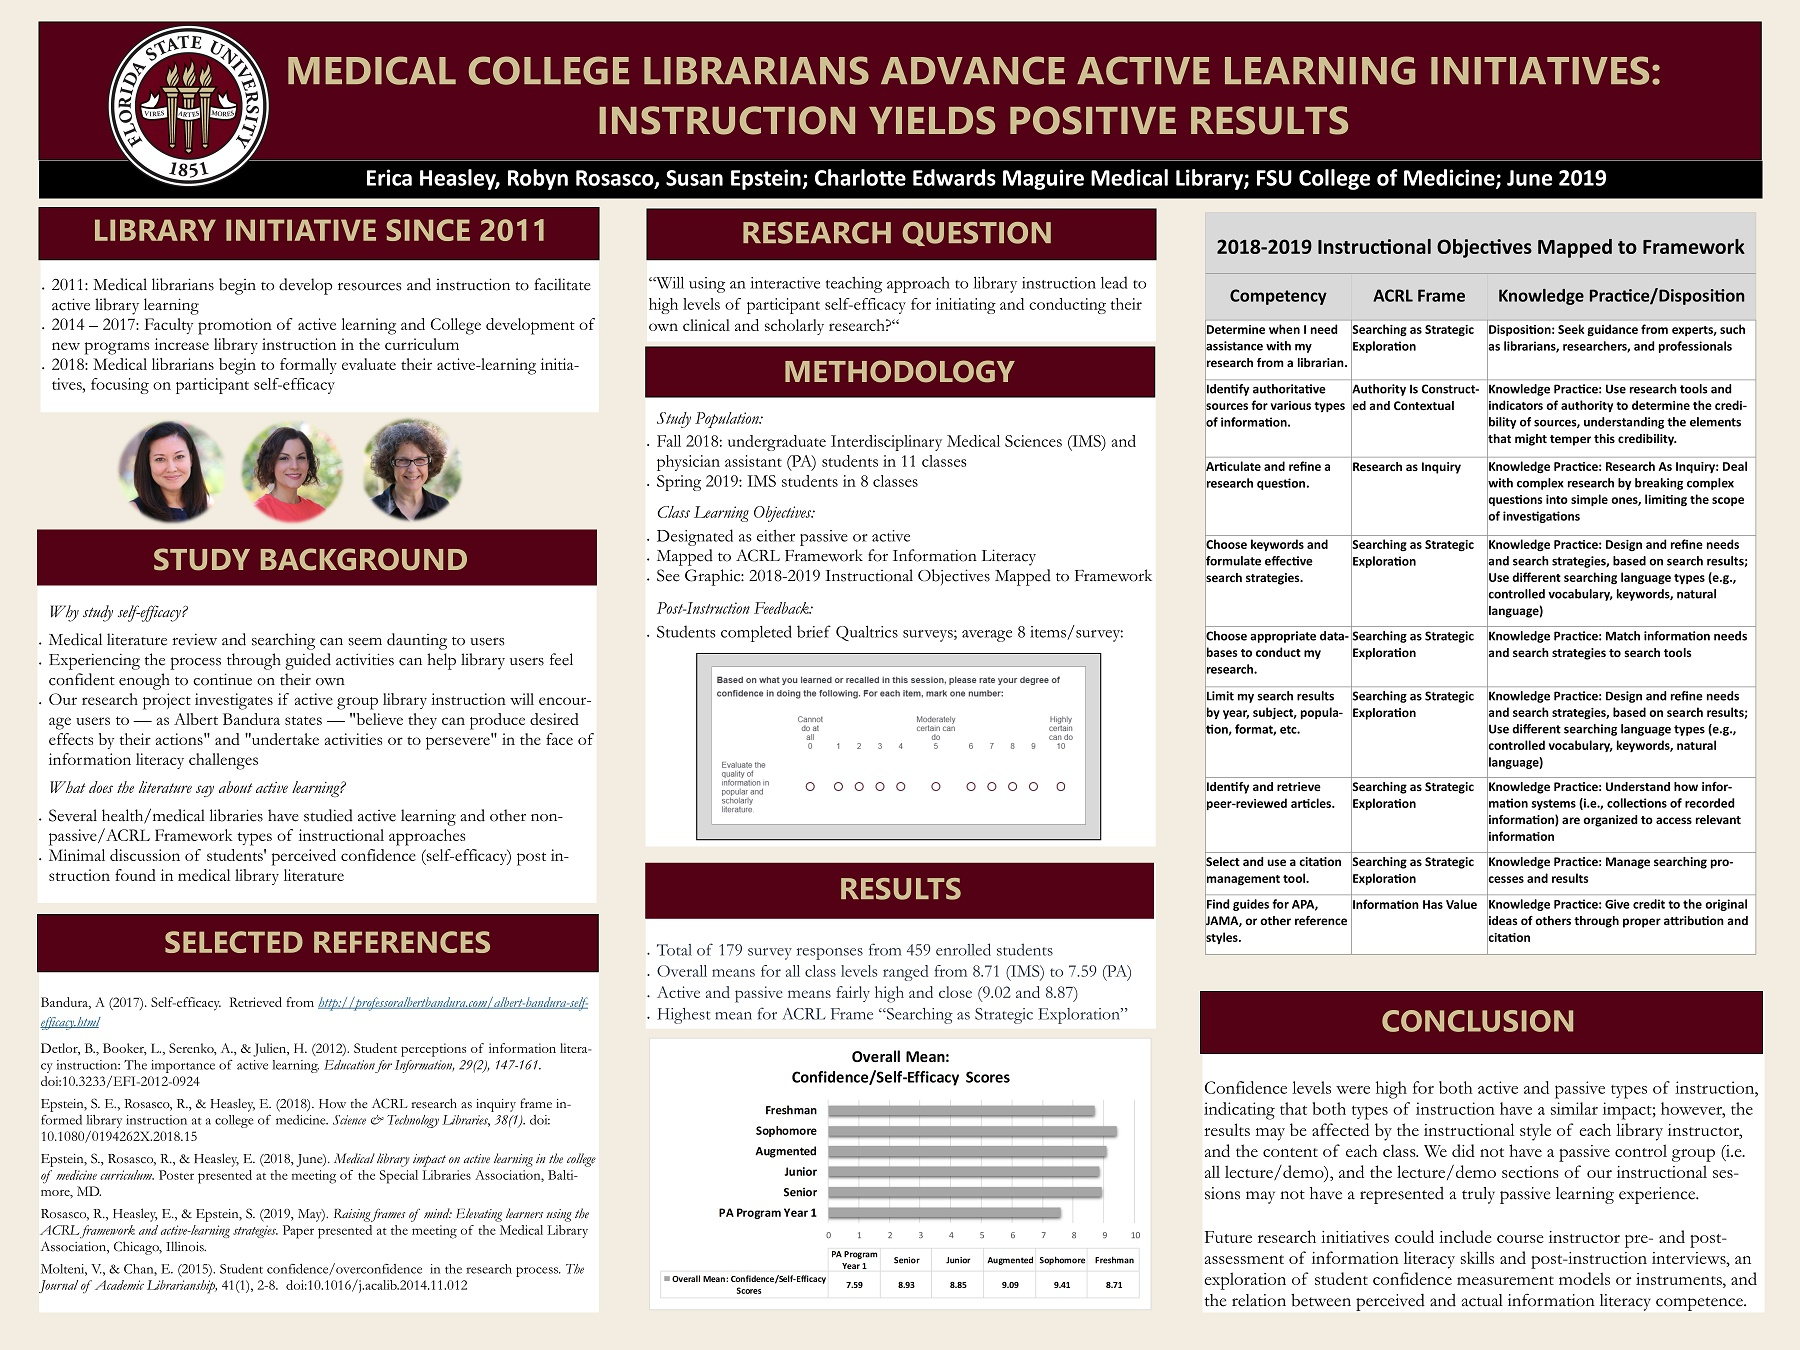 Medical College Librarians Advance Active Learning Initiatives: Instruction Yields Positive Results by Erica Heasley, Robyn Rosasco, Susan Epstein, FSU